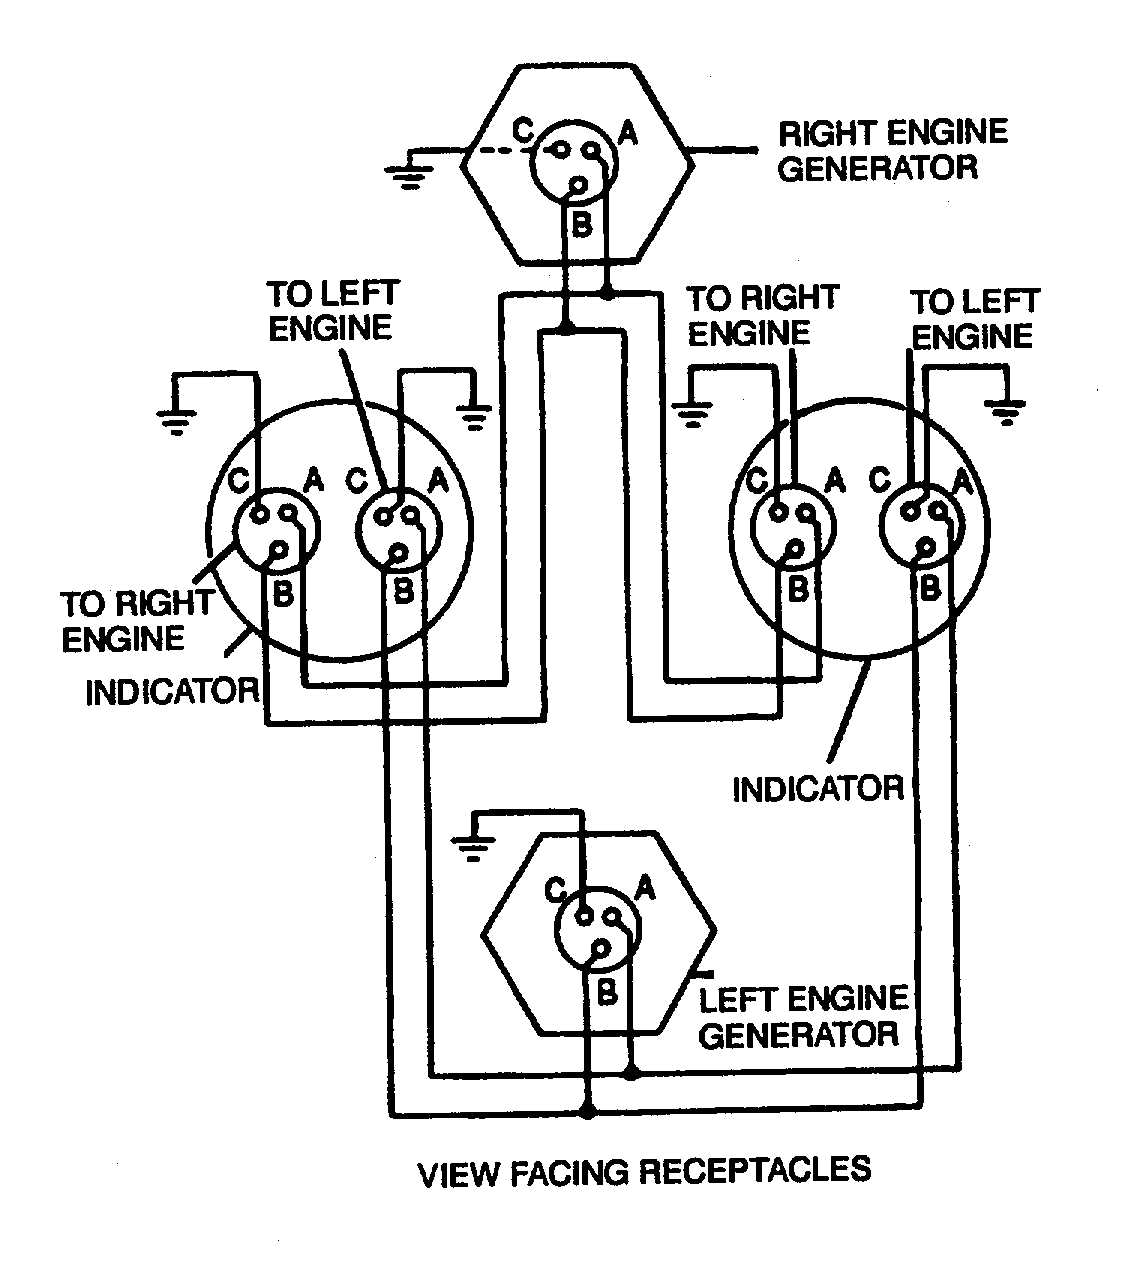 Duraspark Ii Wiring Diagram from aviationmiscmanuals.tpub.com